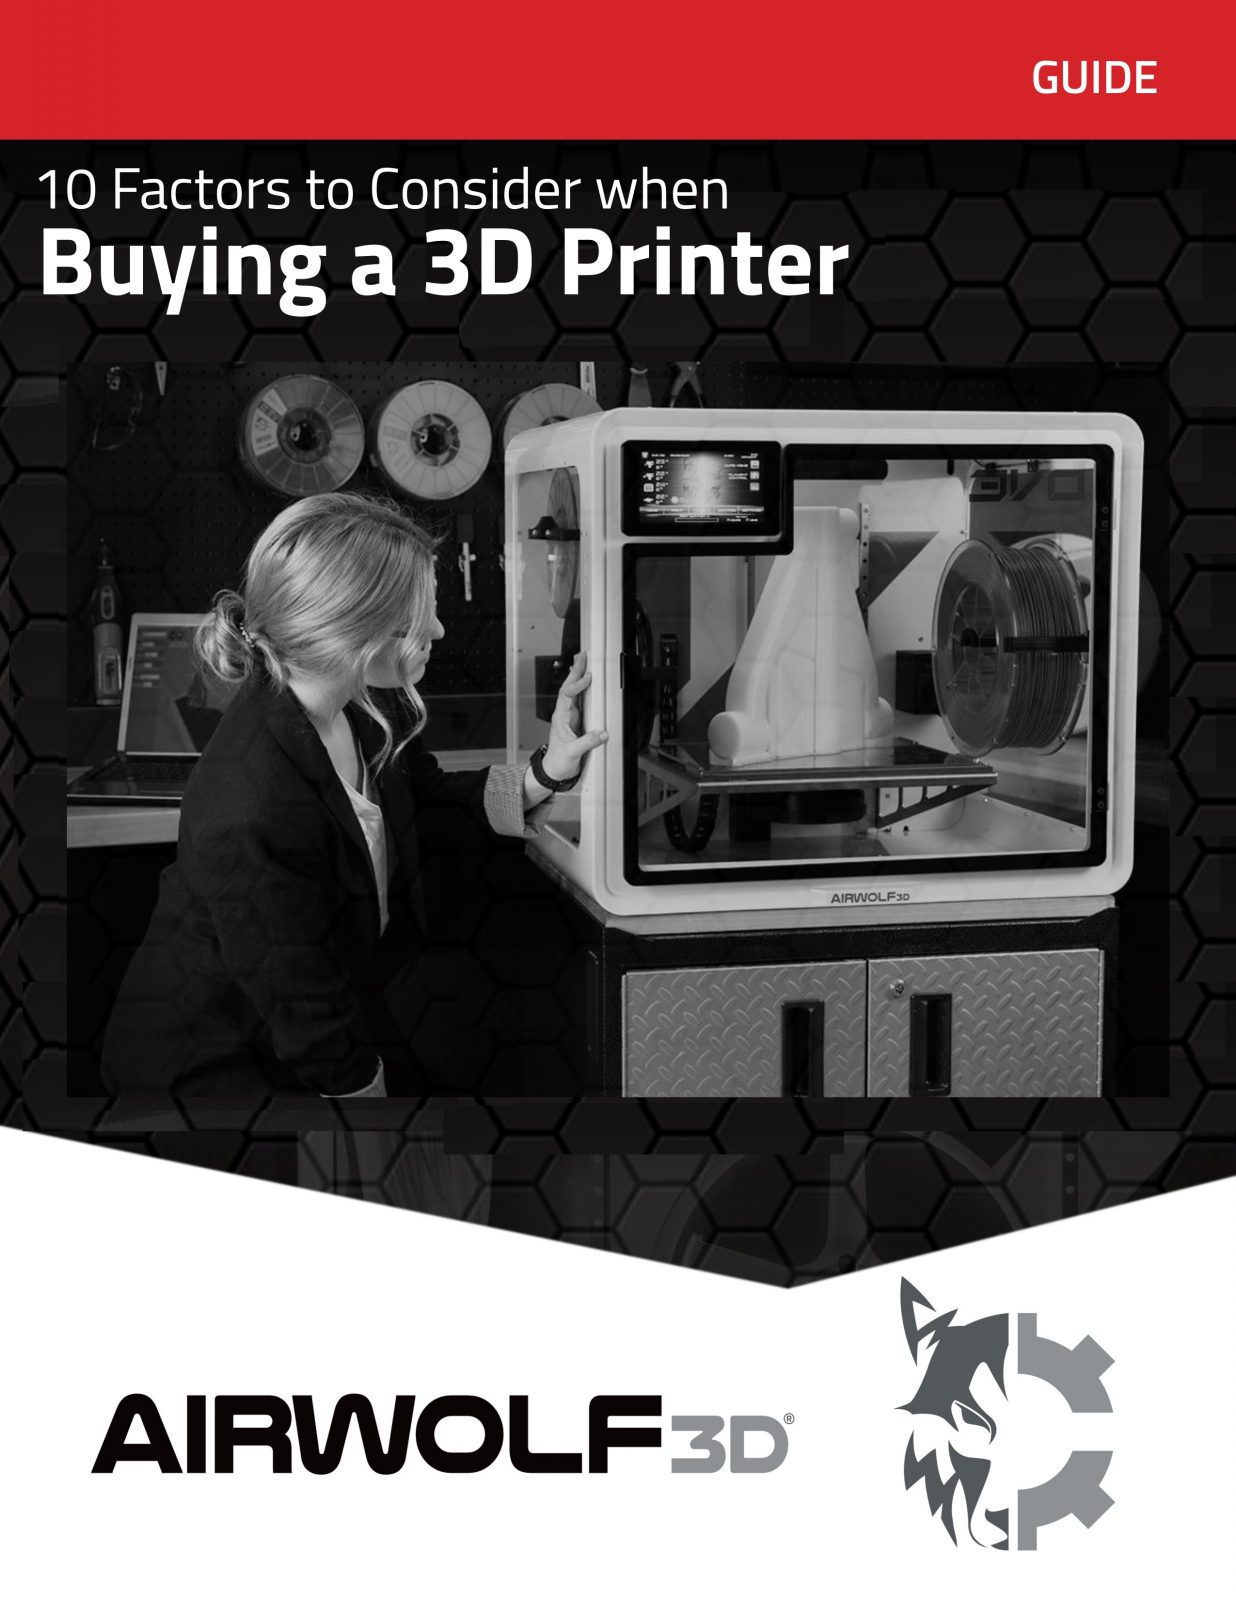 Guide to Buying a 3D Printer